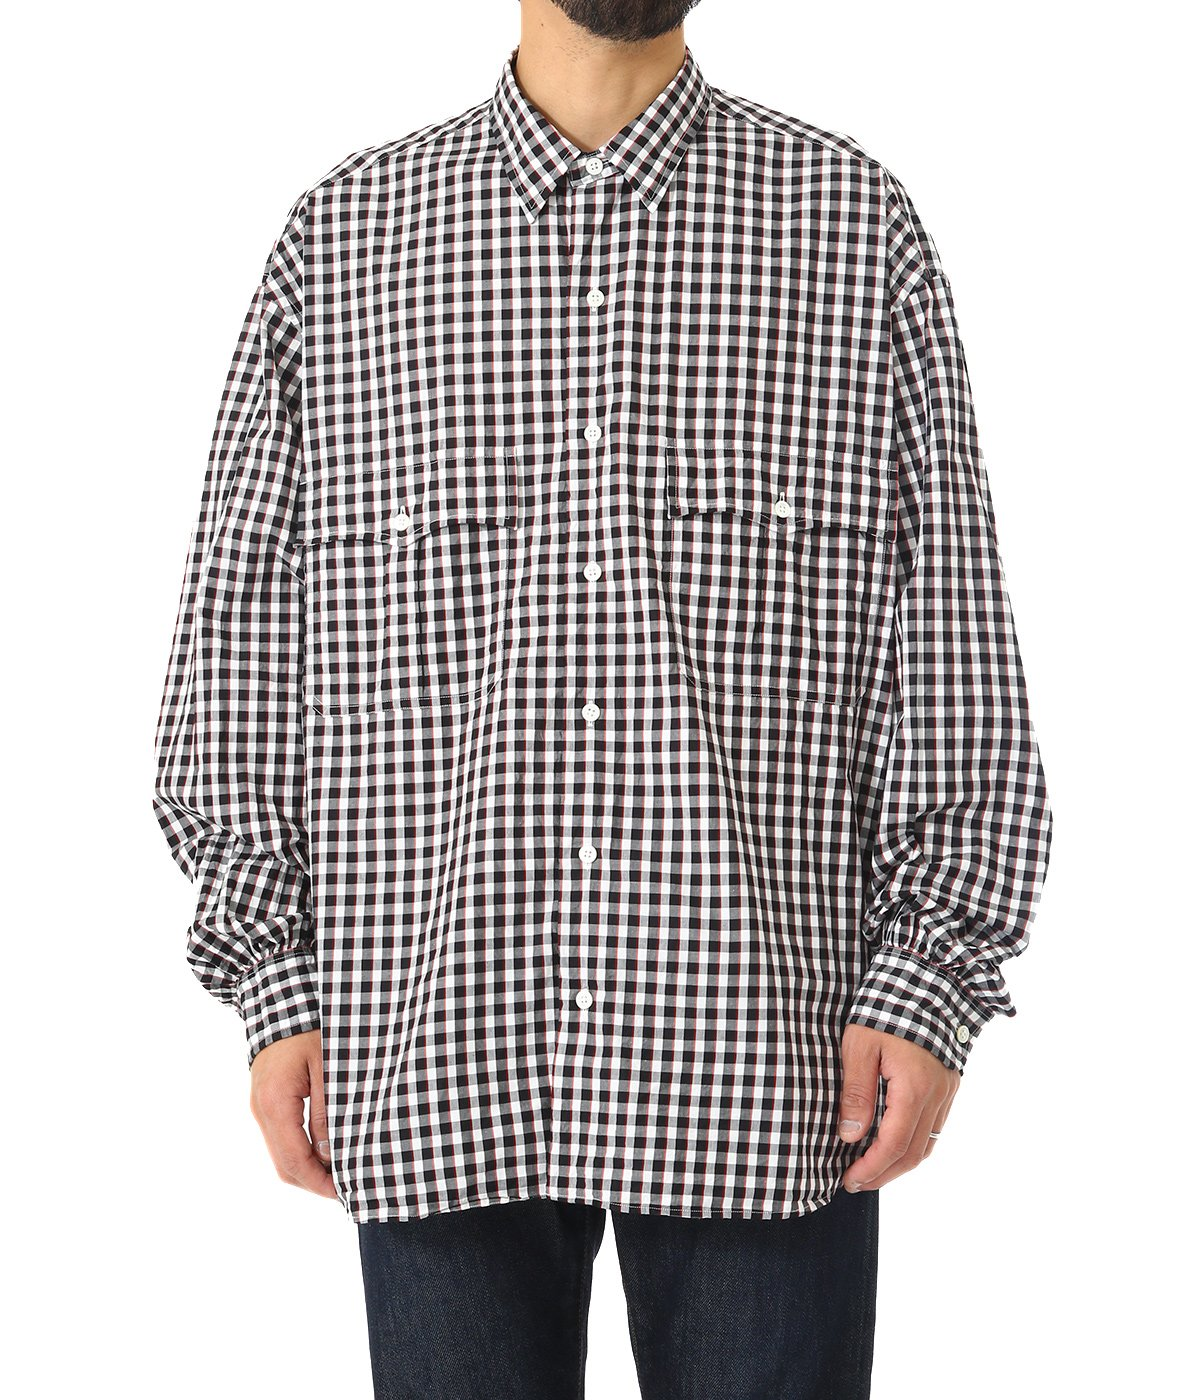 ROLL UP TRICOLOR G/C SHIRT